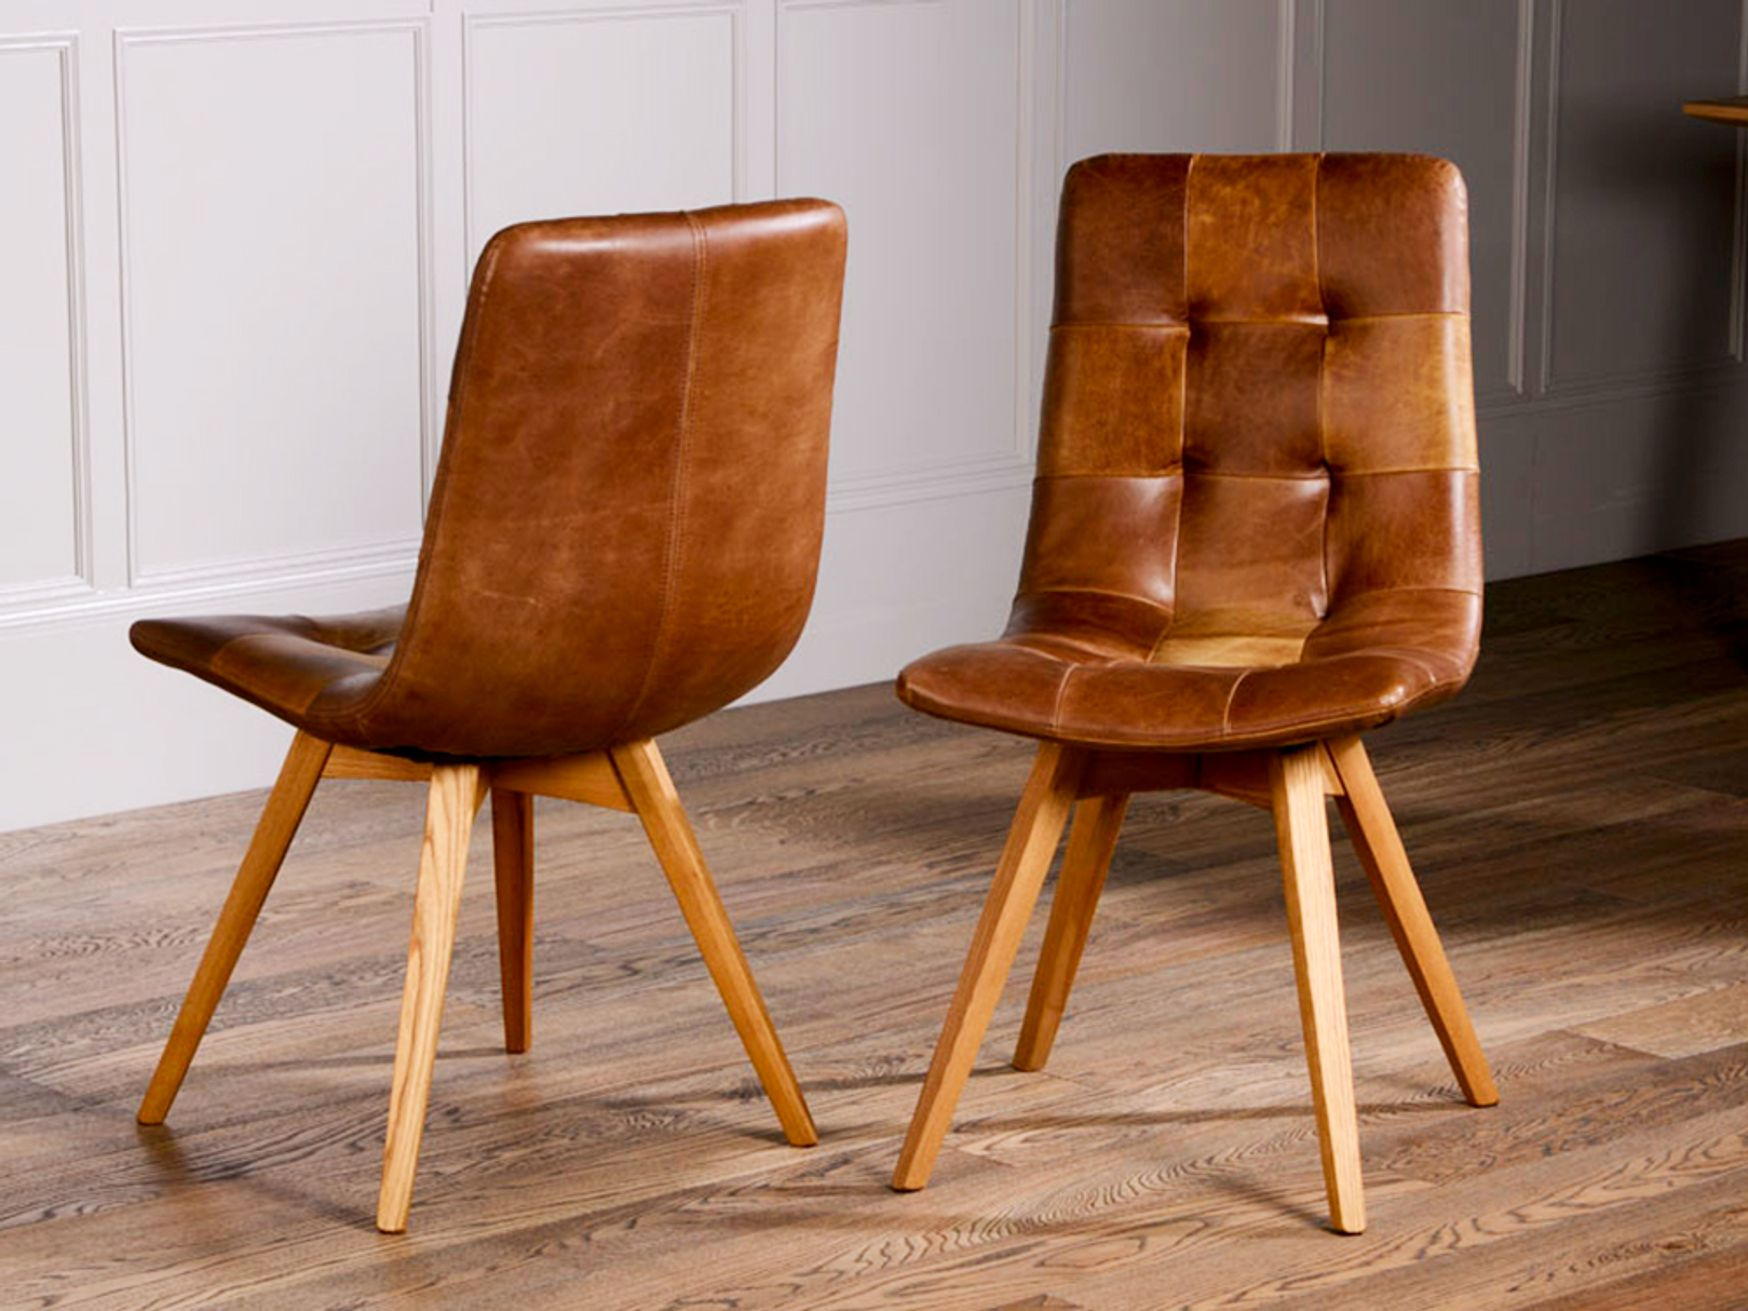 Brand New Vintage Leather Breakout Boardroom Chairs - Available in Grey or Brown